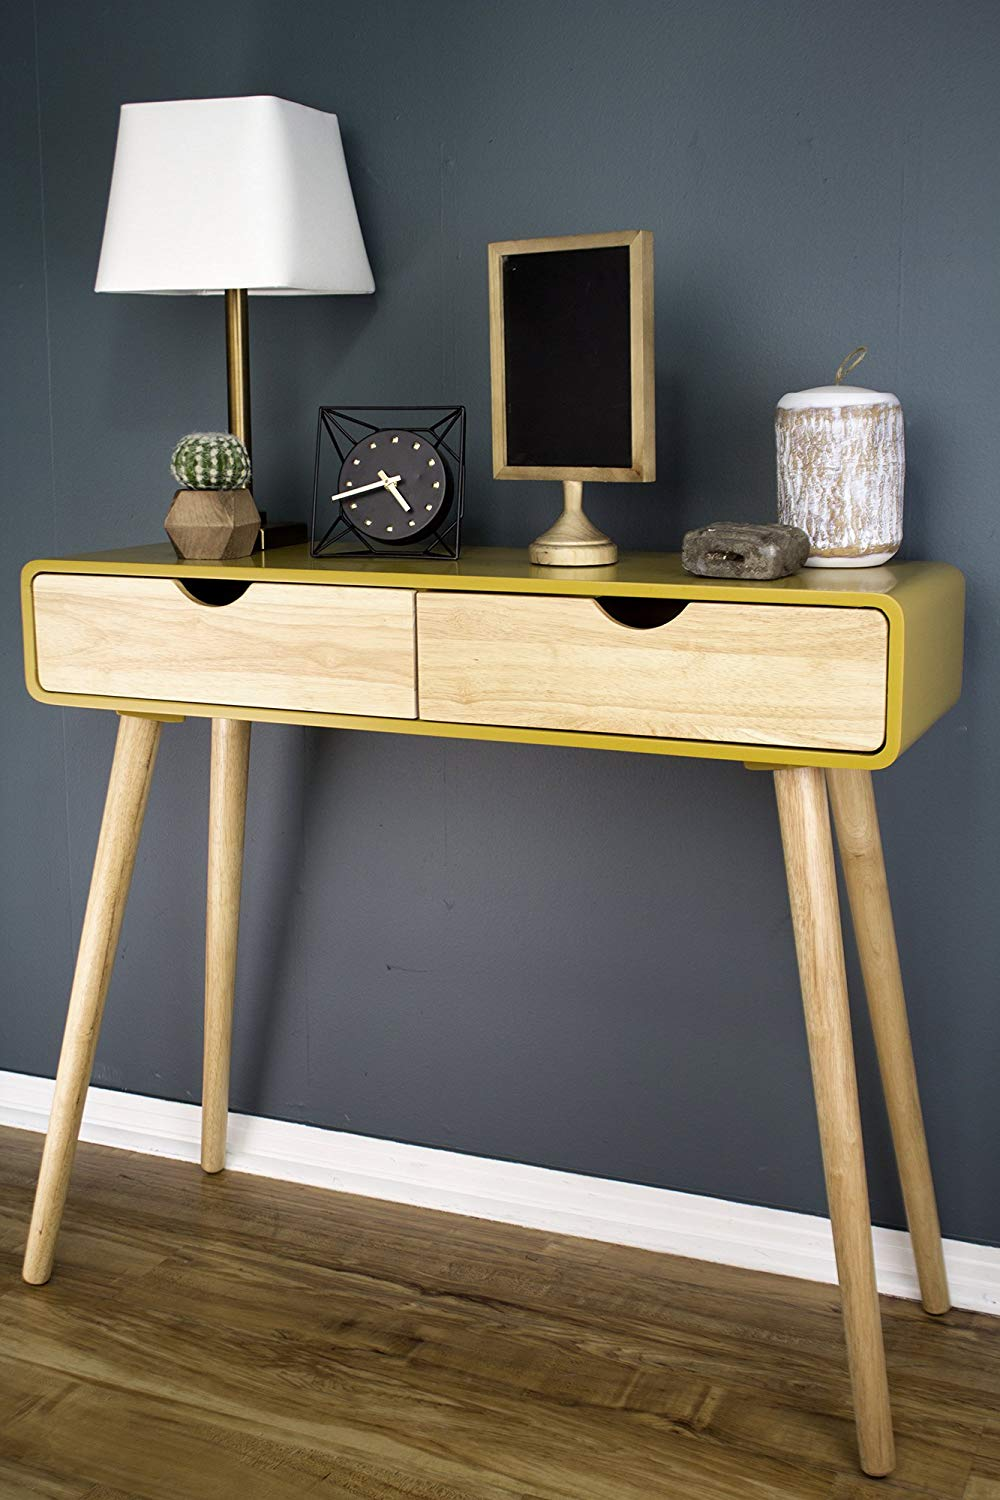 yellow-entryway-accent-table-with-drawers-mid-century-modern-style